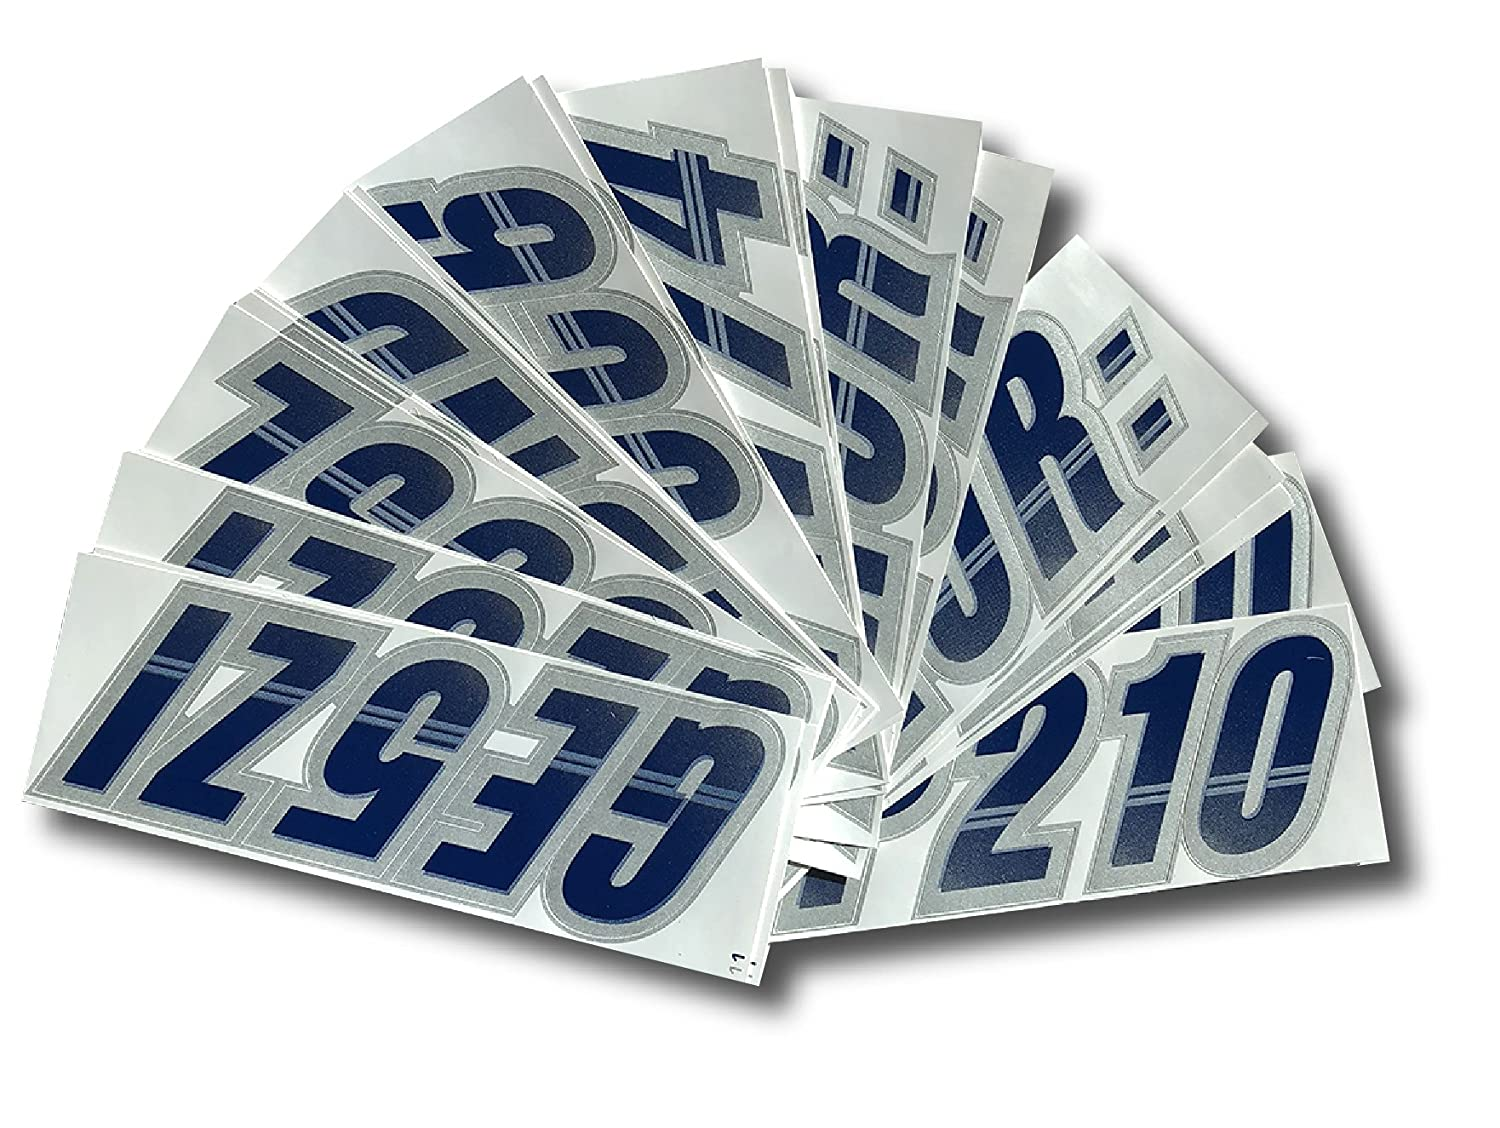 Stiffie Techtron Navy//Silver 3 Alpha-Numeric Registration Identification Numbers Stickers Decals for Boats /& Personal Watercraft